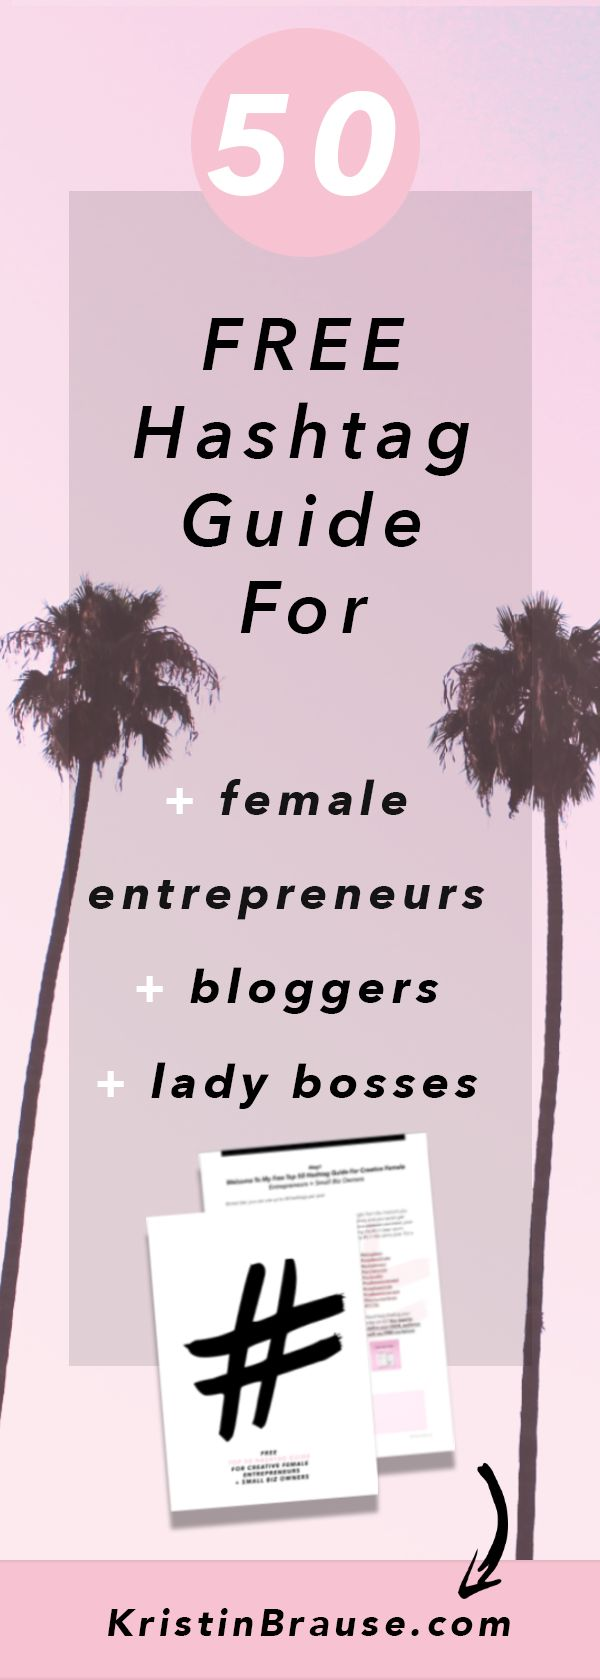 Looking for hashtags for Instagram? Get this free guide of the top 50 trending hashtags for female entrepreneurs, bloggers and small business owners.